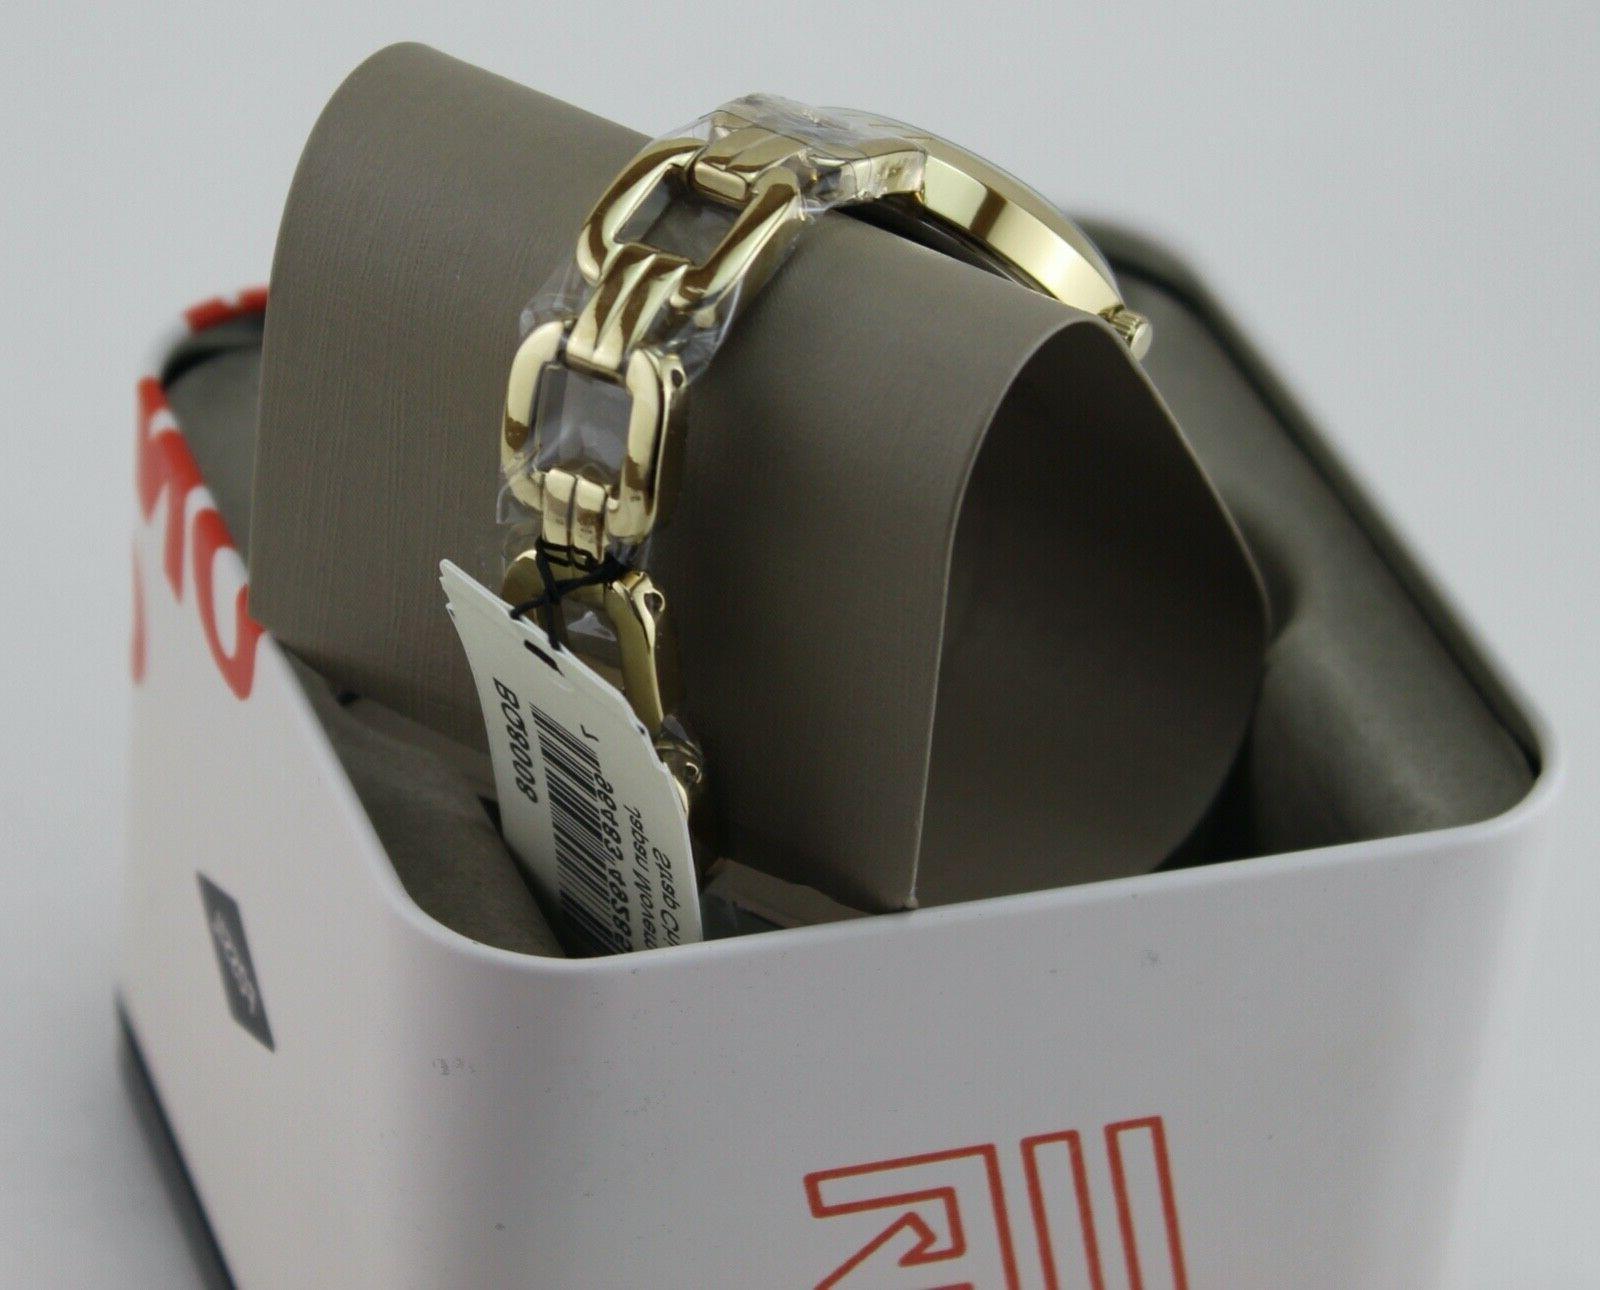 NEW AUTHENTIC GOLD BQ8008 WATCH